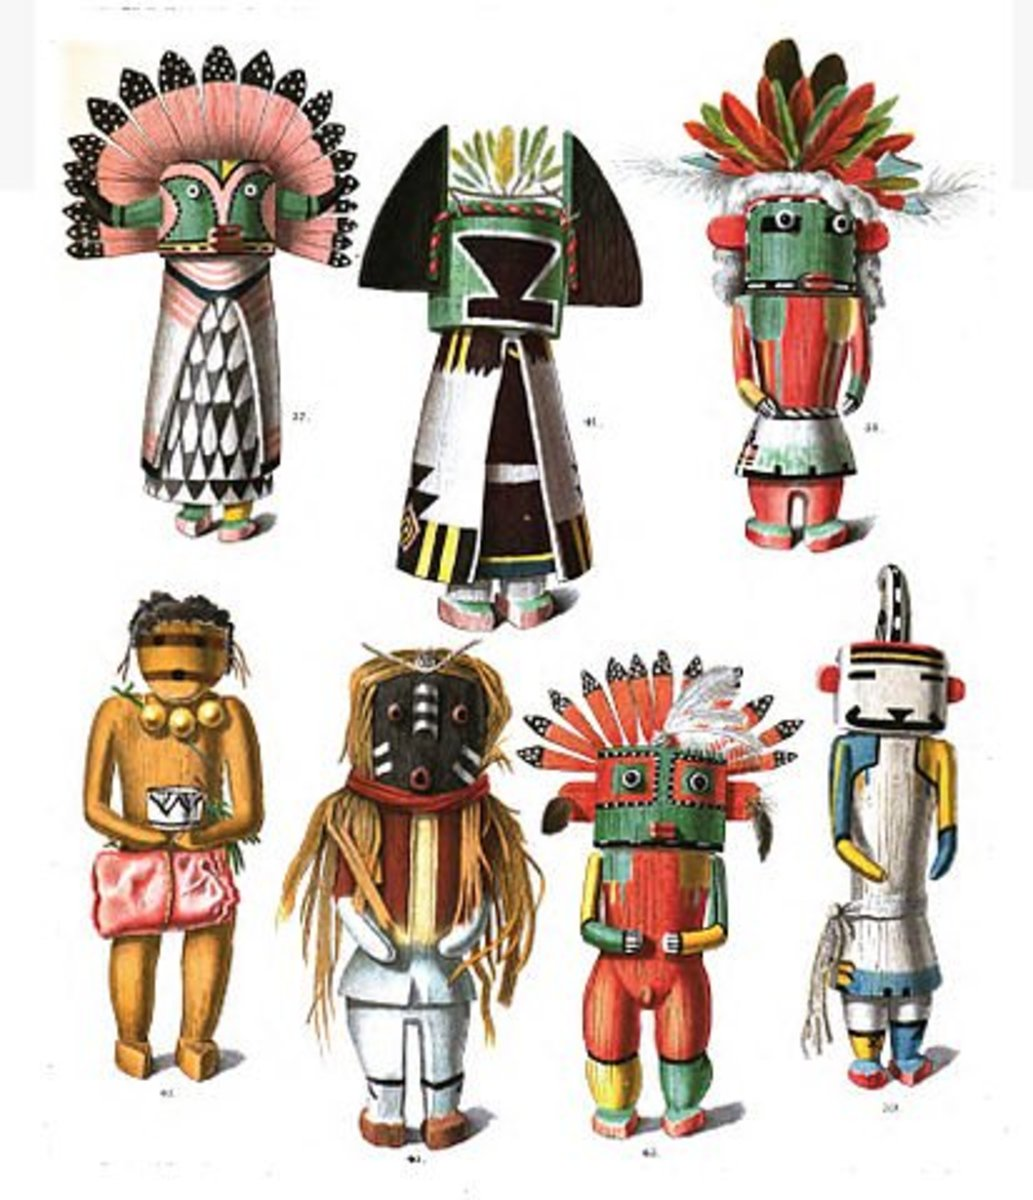 Drawings of kachina dolls, from an 1894 anthropology book, by Jesse Walter Fewkes. The Hopi call them Katsinas. They are the most important part of the sacred ceremonies.